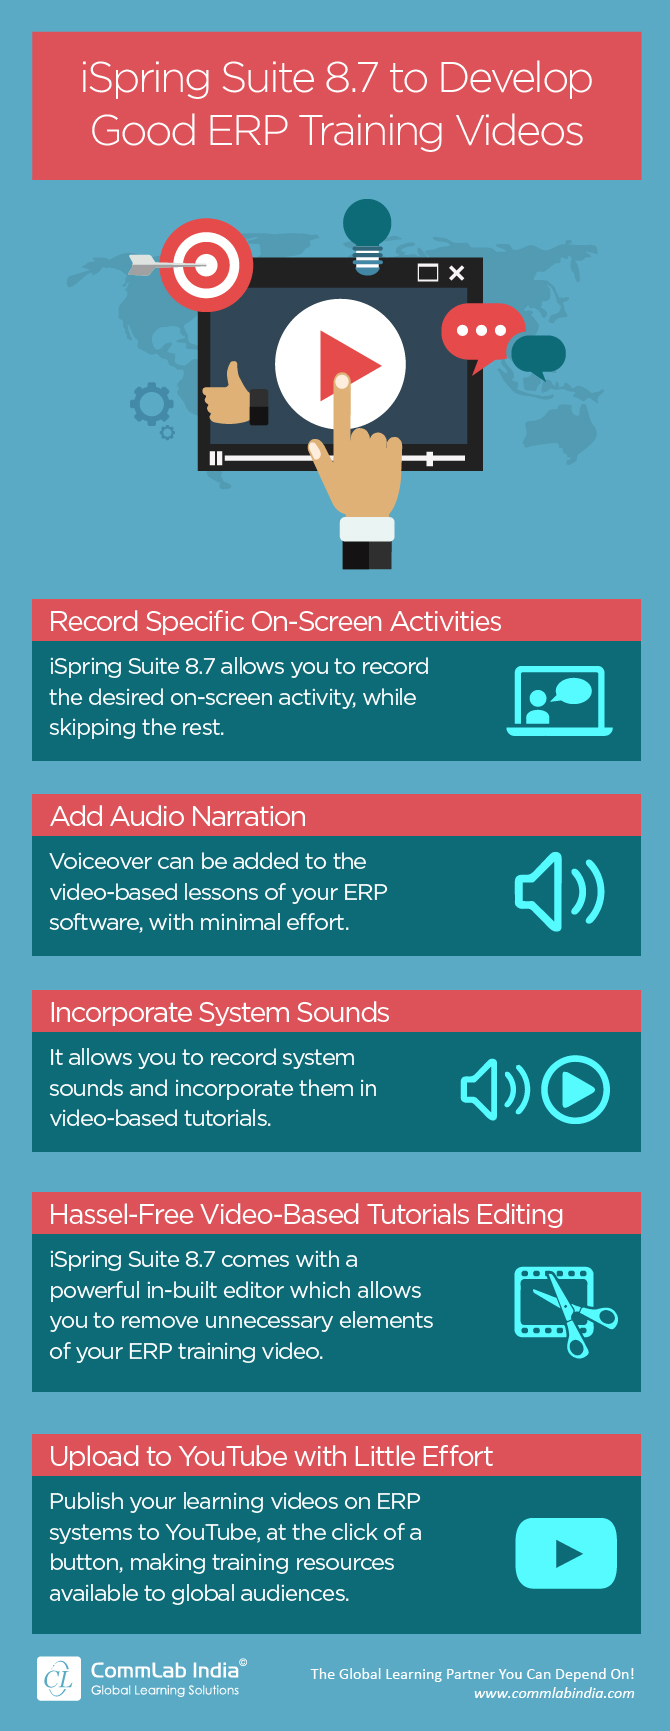 iSpring Suite 8.7 to Develop Good ERP Training Videos [Infographic]